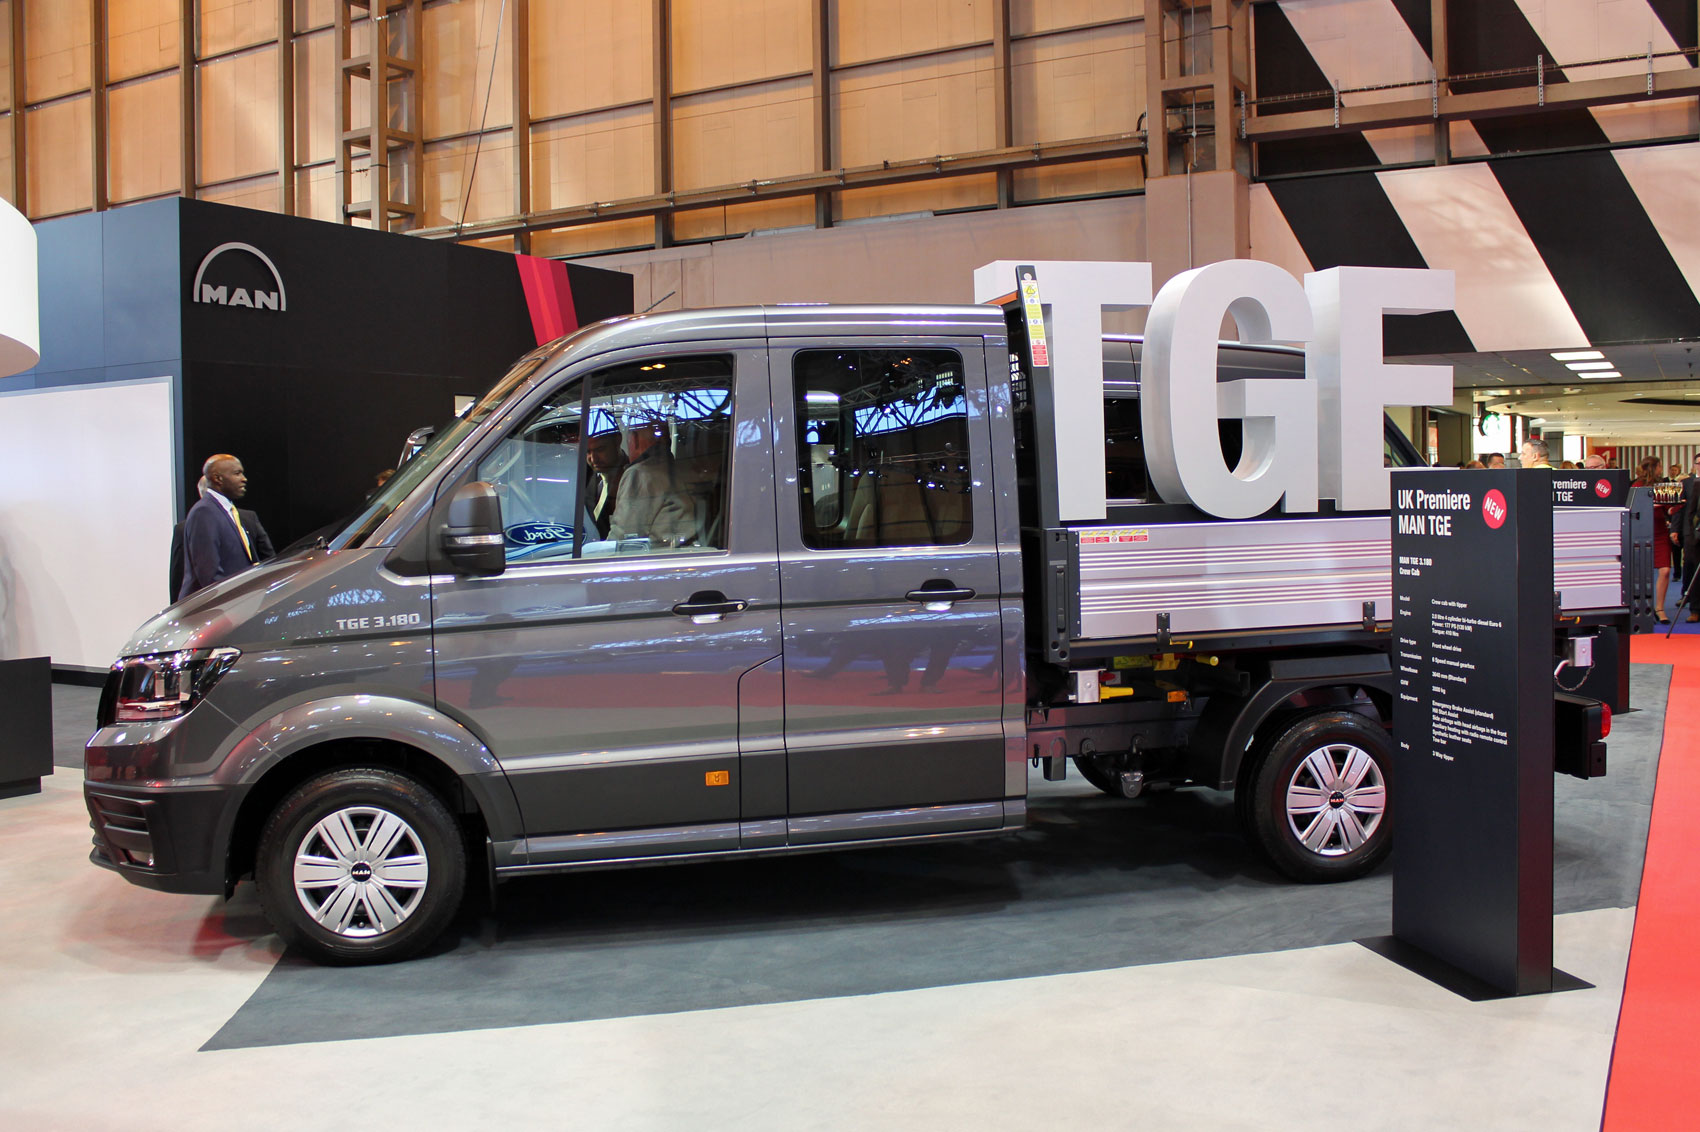 man tge van at the cv show 2017